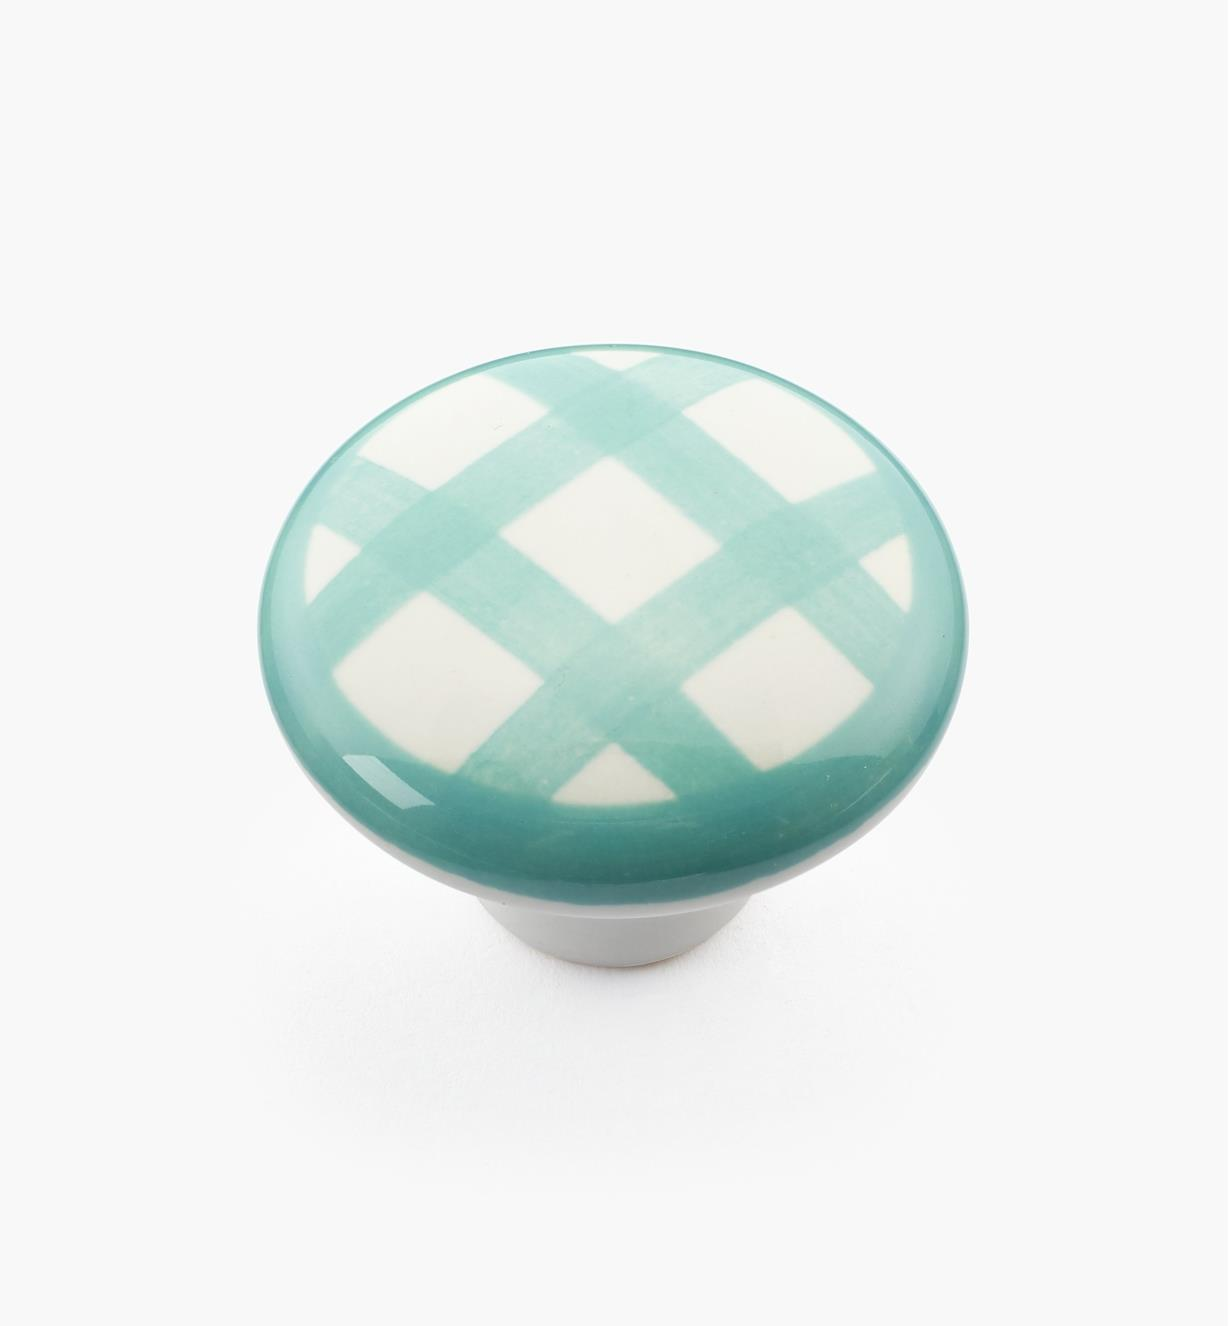 "00W5257 - 1 1/2"" x 1 1/16"" Green Checkered Knob"